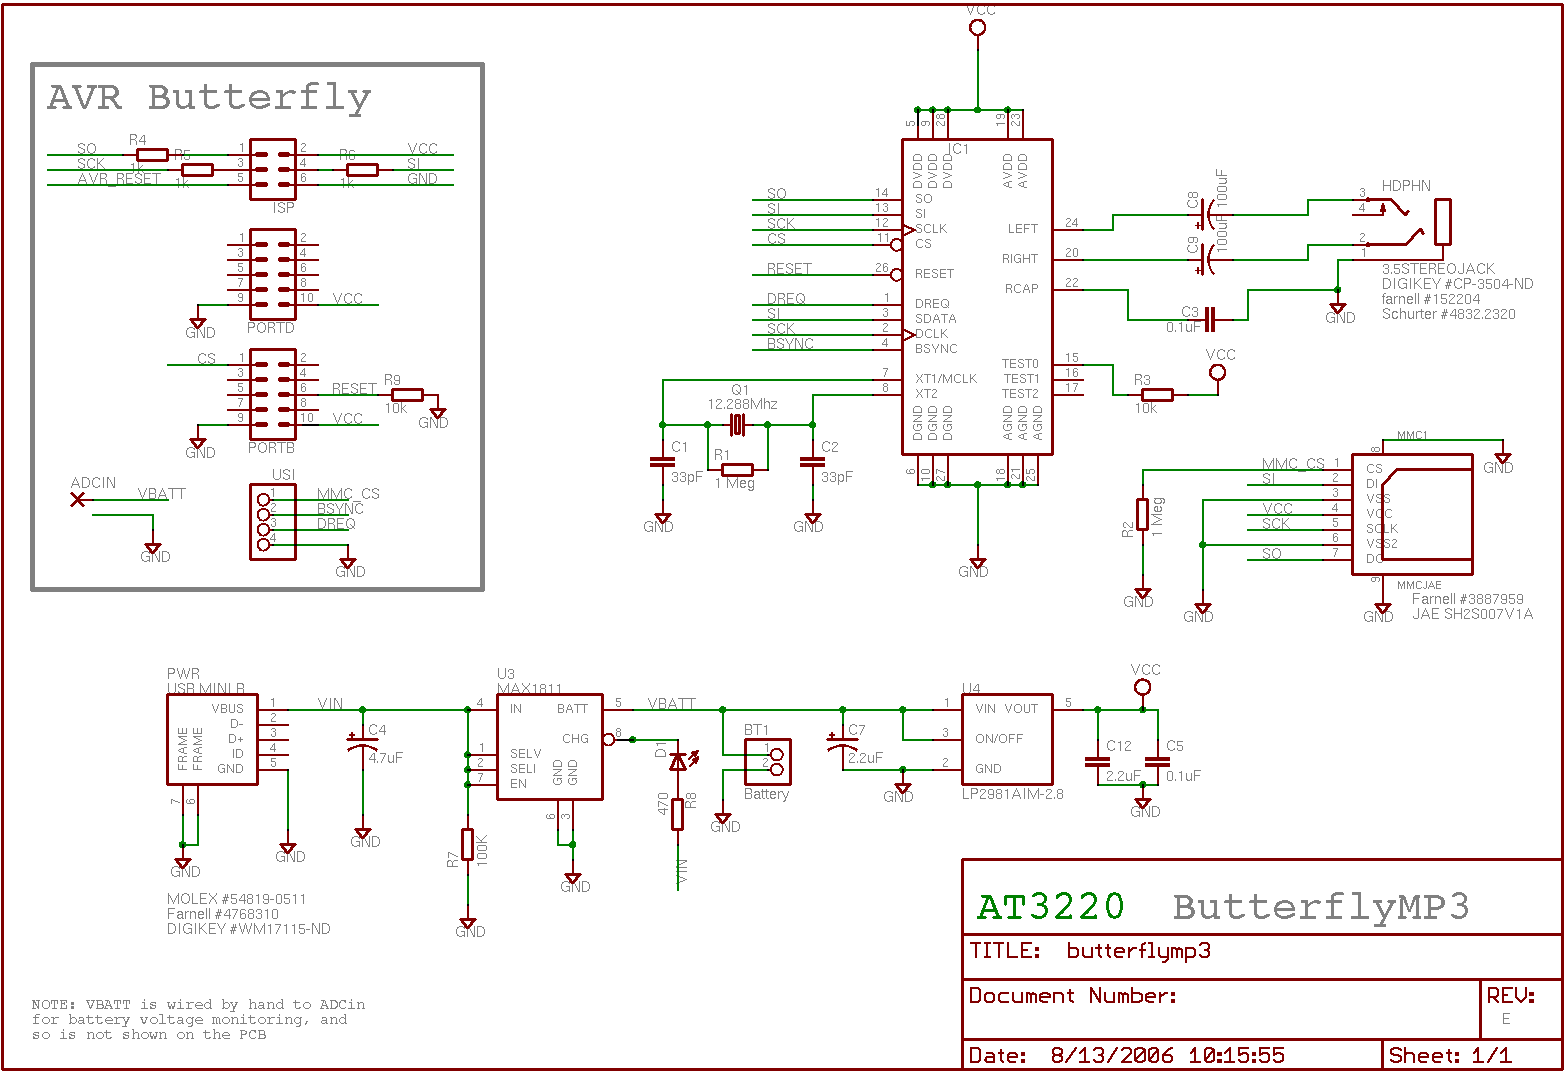 schematic avr butterfly mp3 mx321 avr wiring diagram pdf at cos-gaming.co